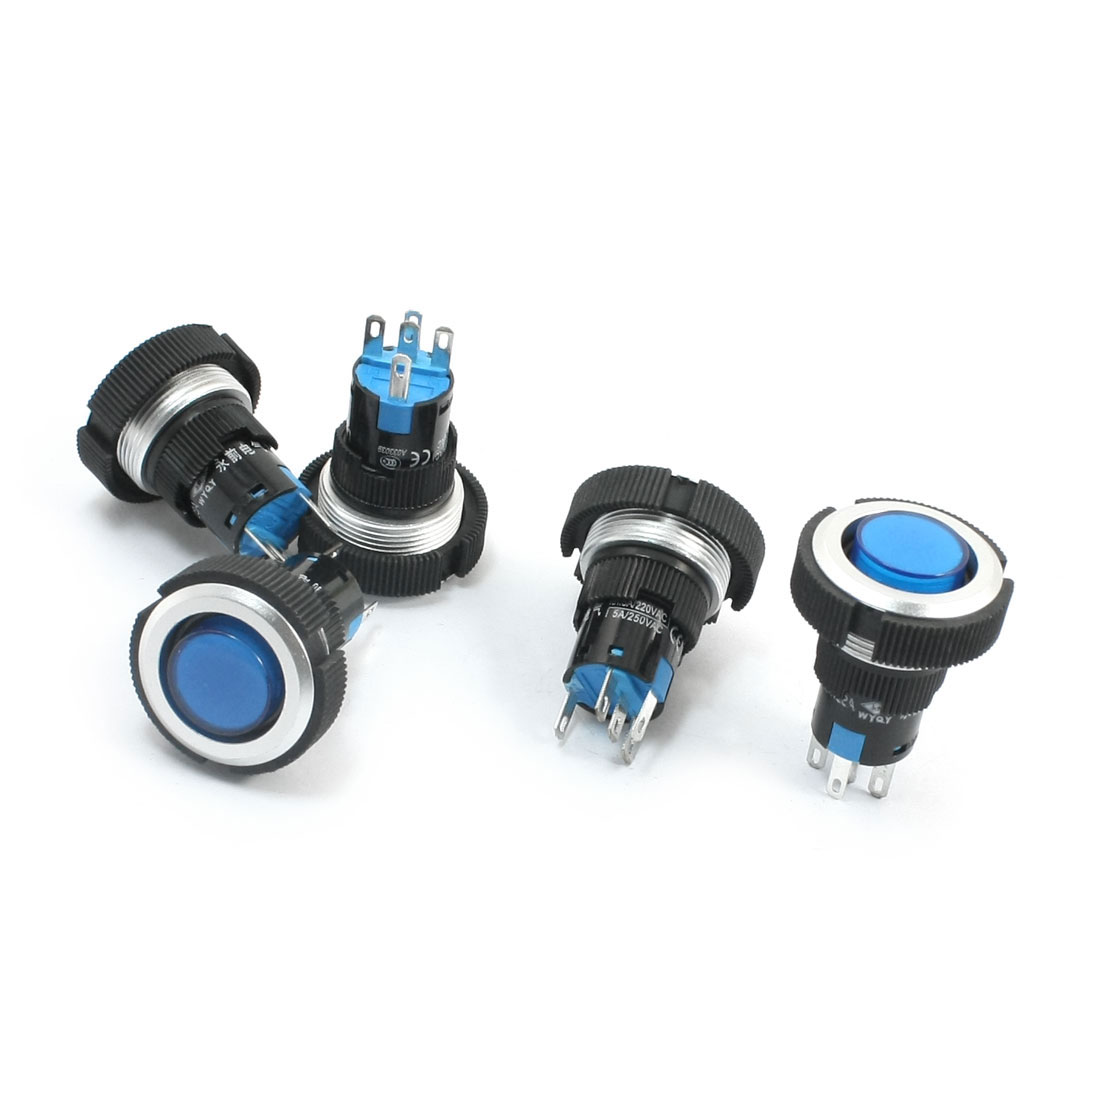 5Pcs 12V 22mm Dia Thread Panel Mounting SPDT 1NO 1NC 5Pin Latching Blue Pilot Lamp Push Button Switch